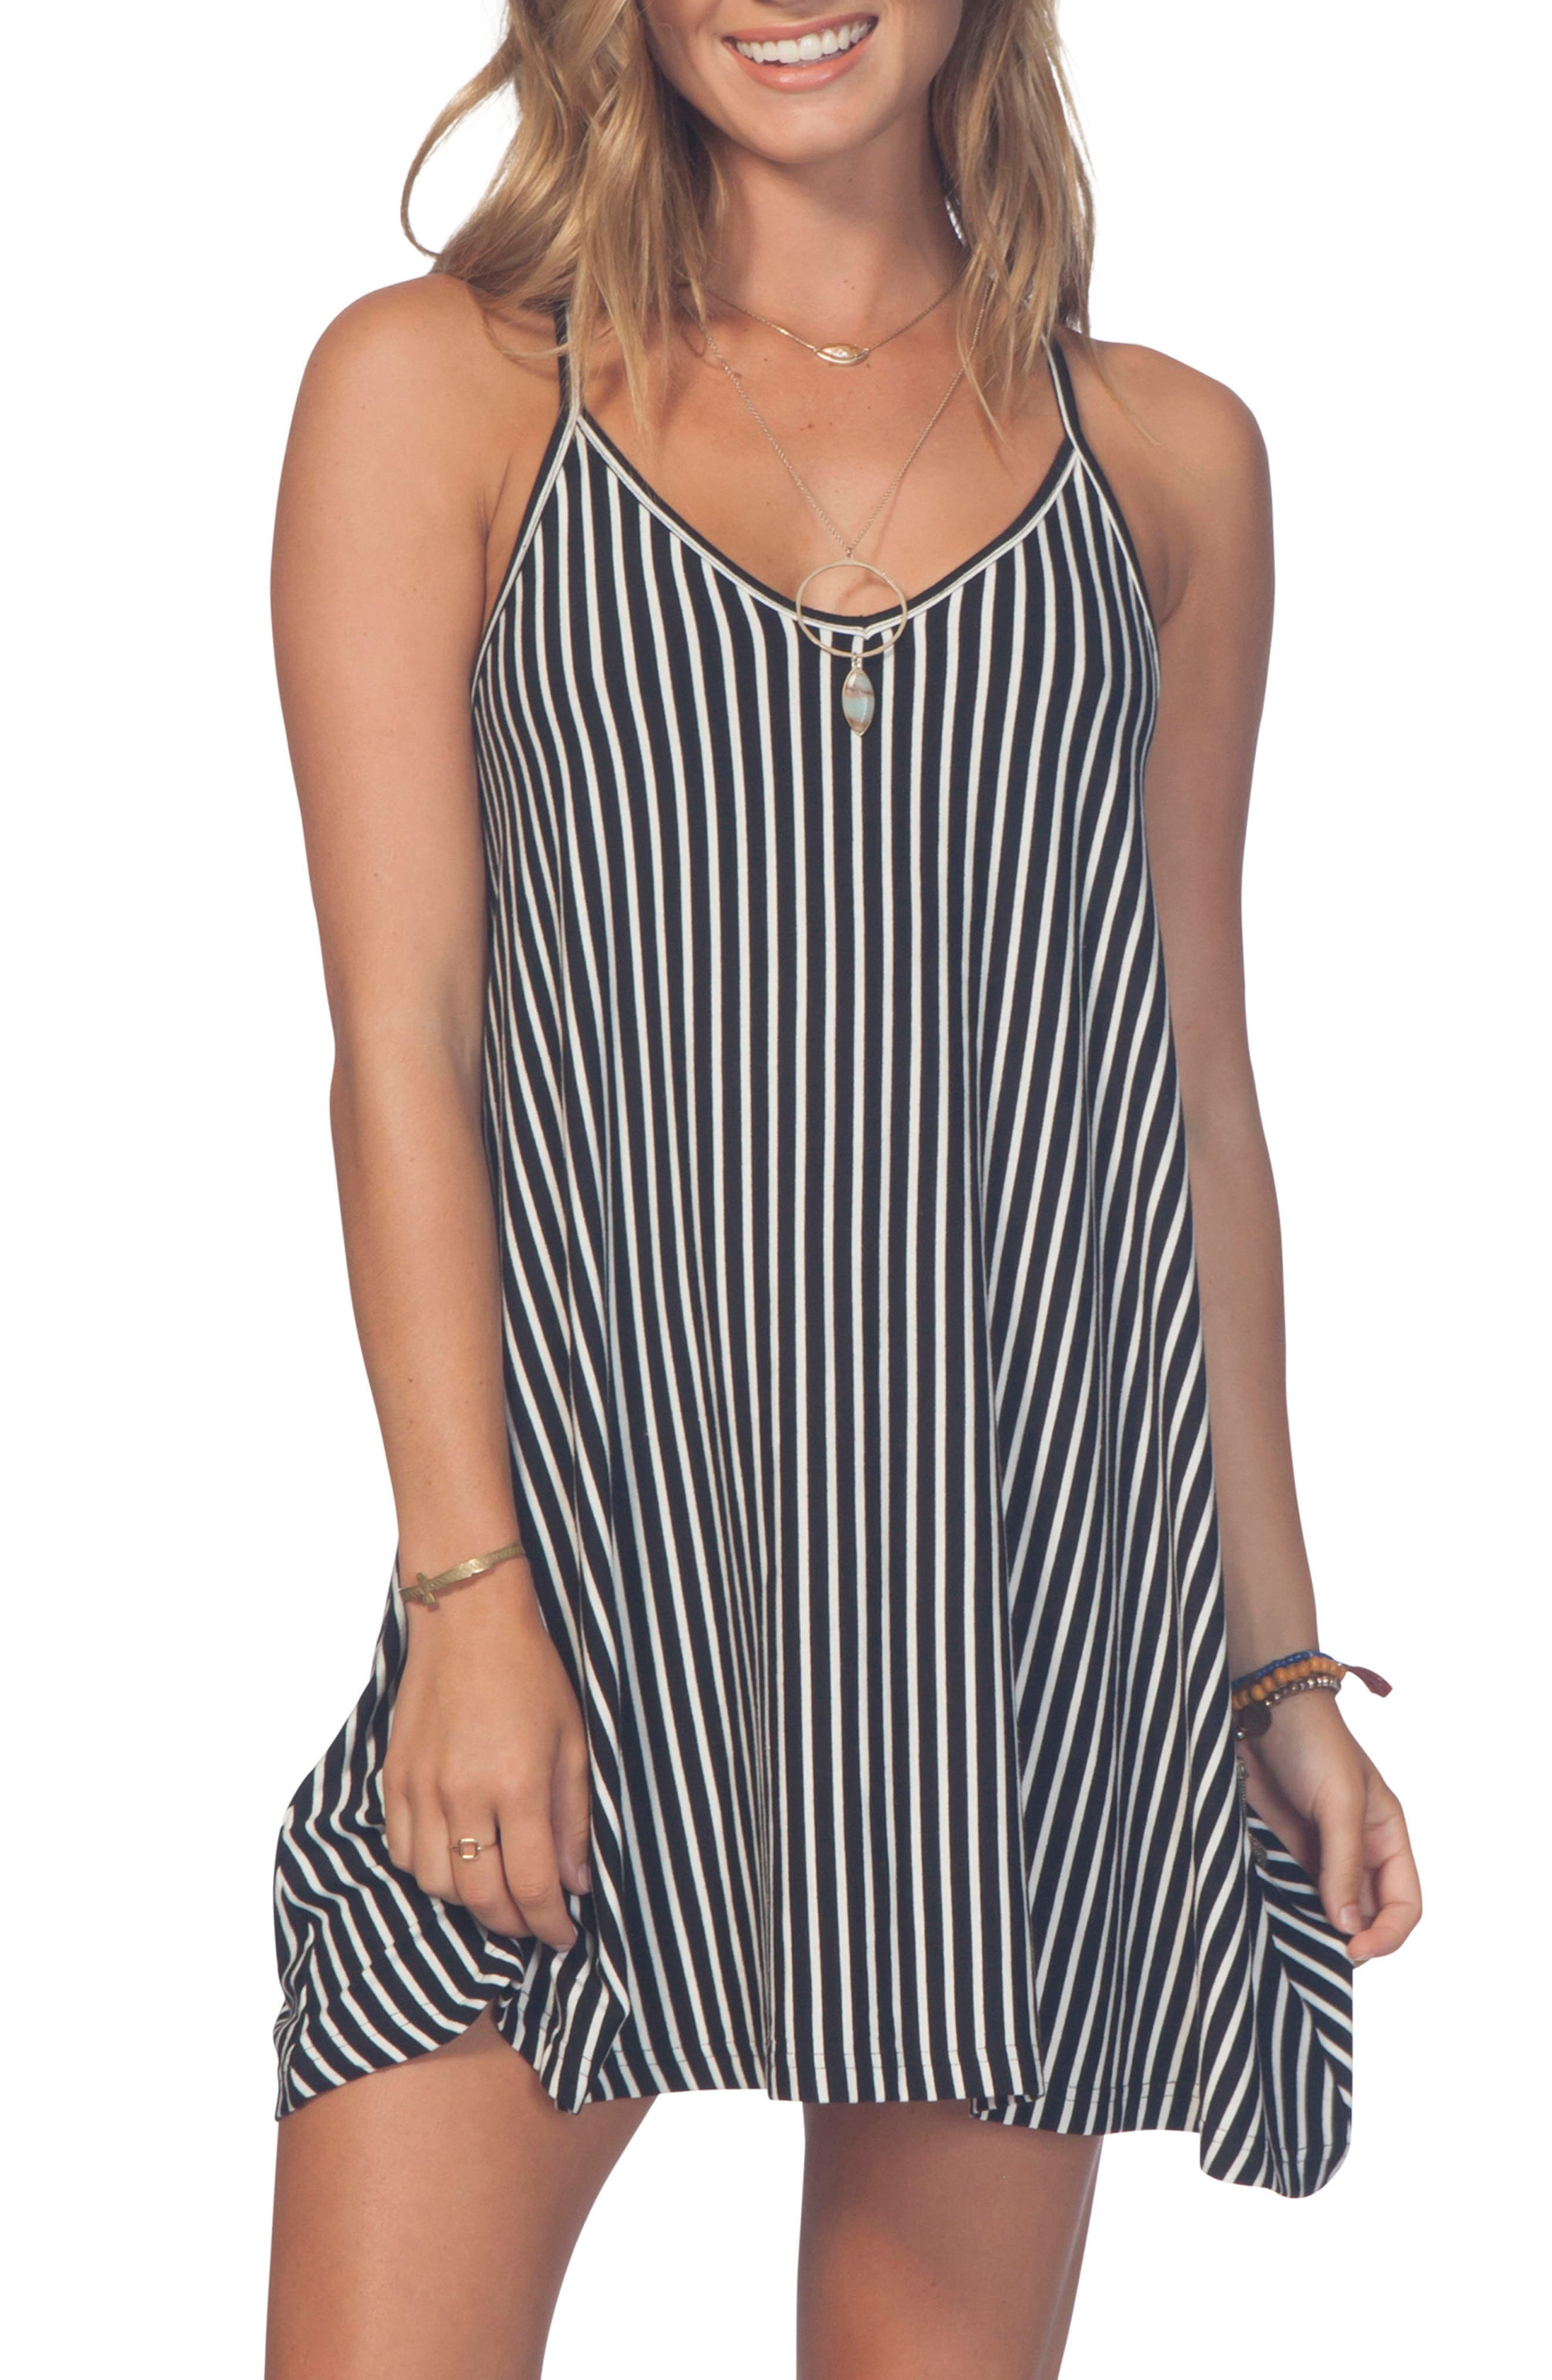 Main Image - Rip Curl Day Tripper Strappy Swing Dress